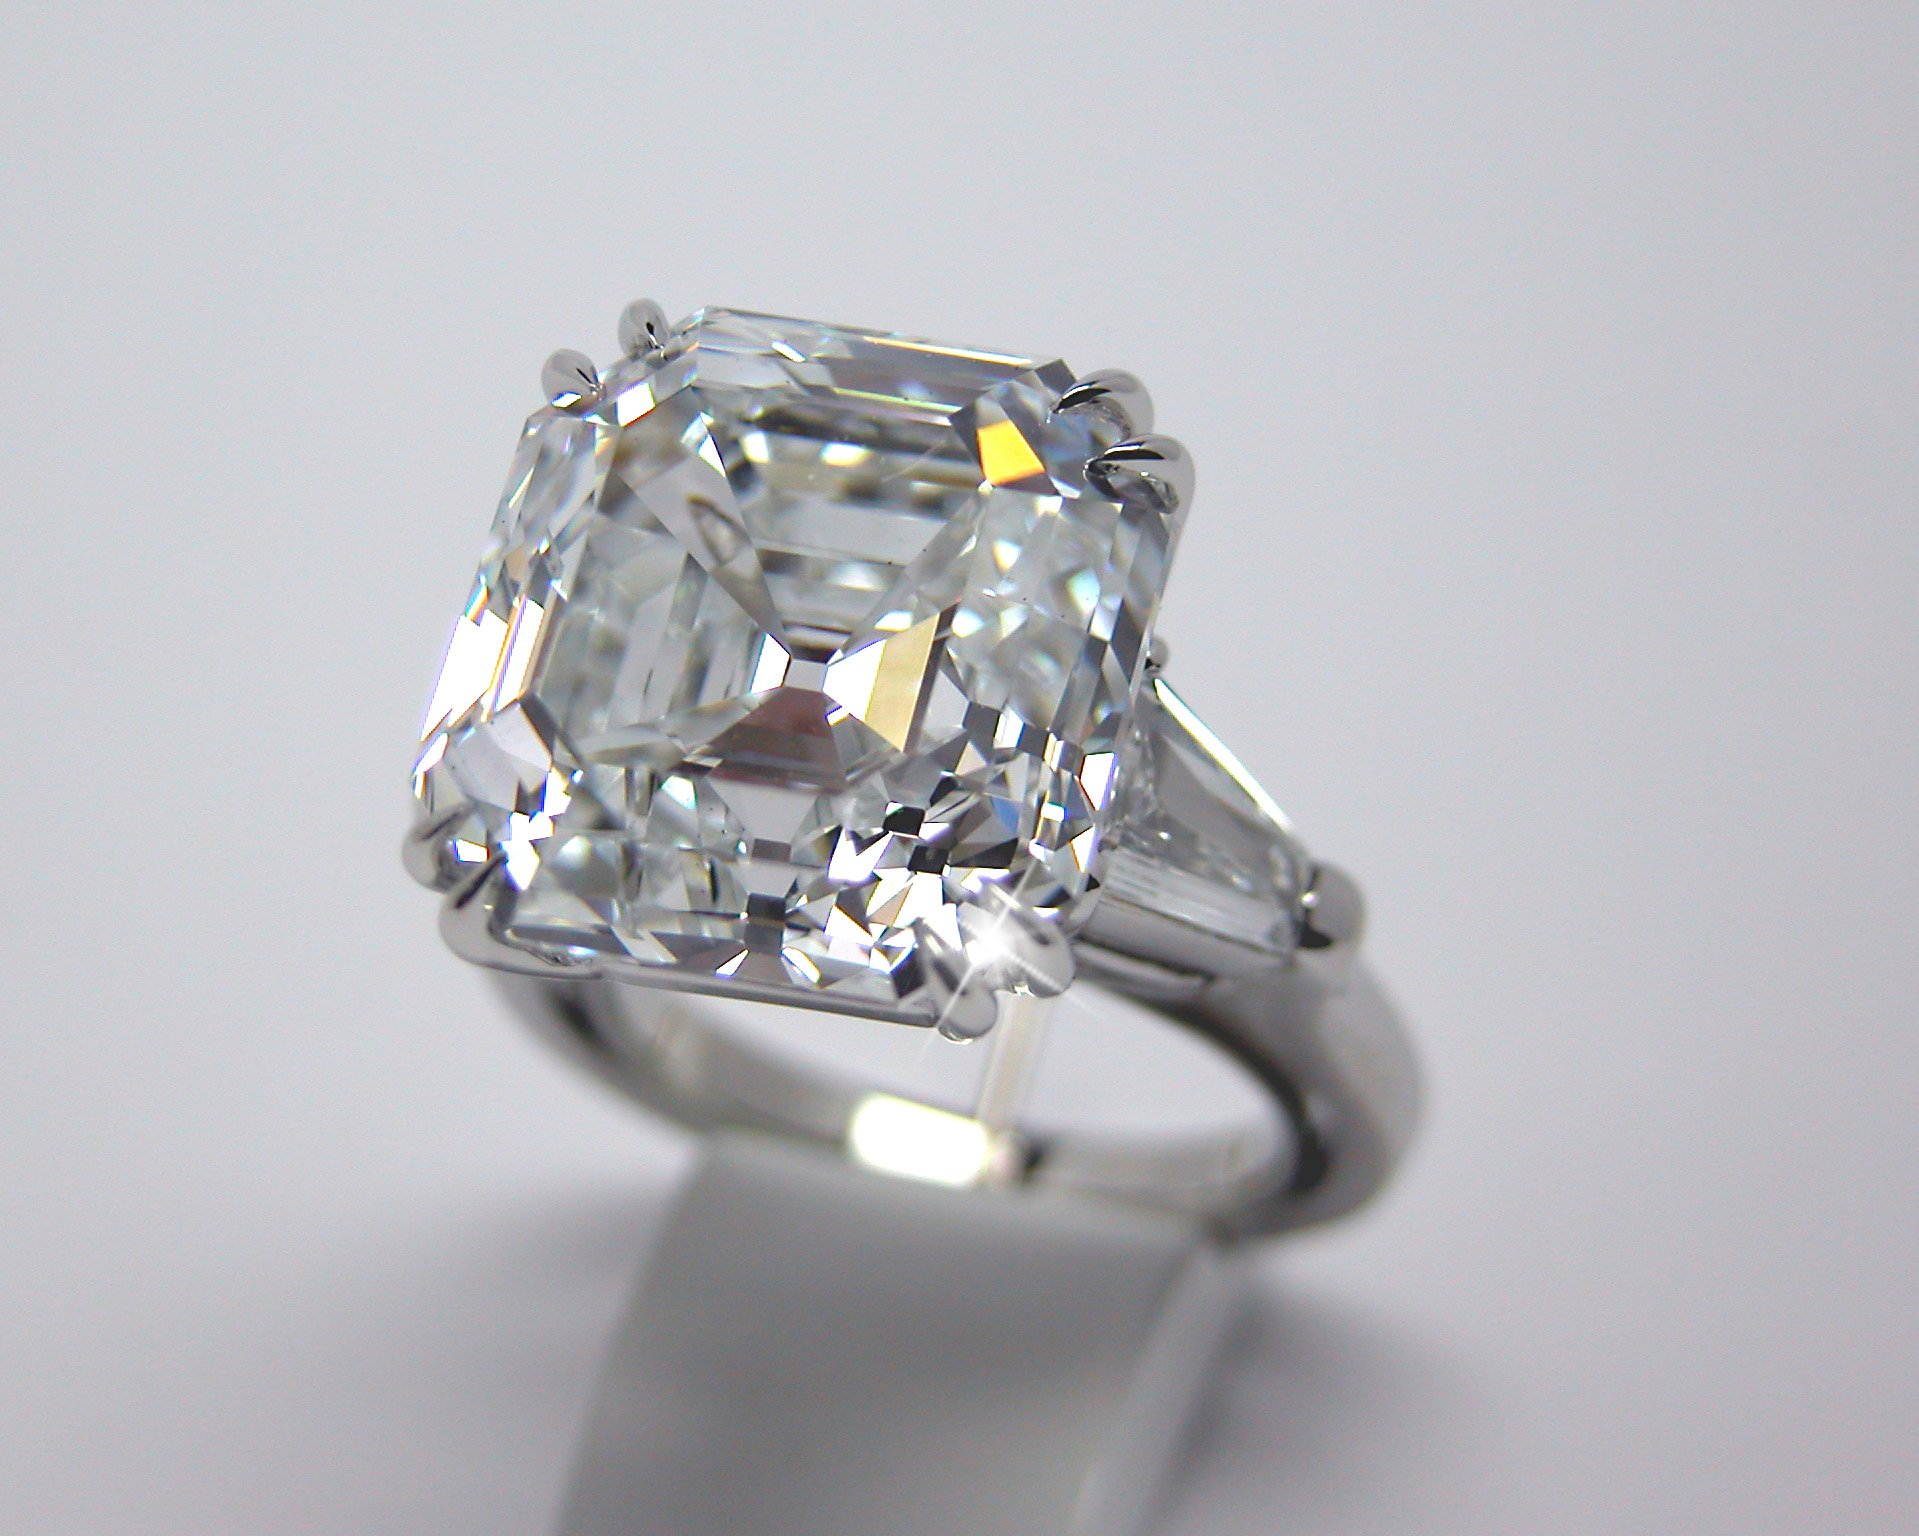 ascher excellent diamond e carat cut asscher diamonds